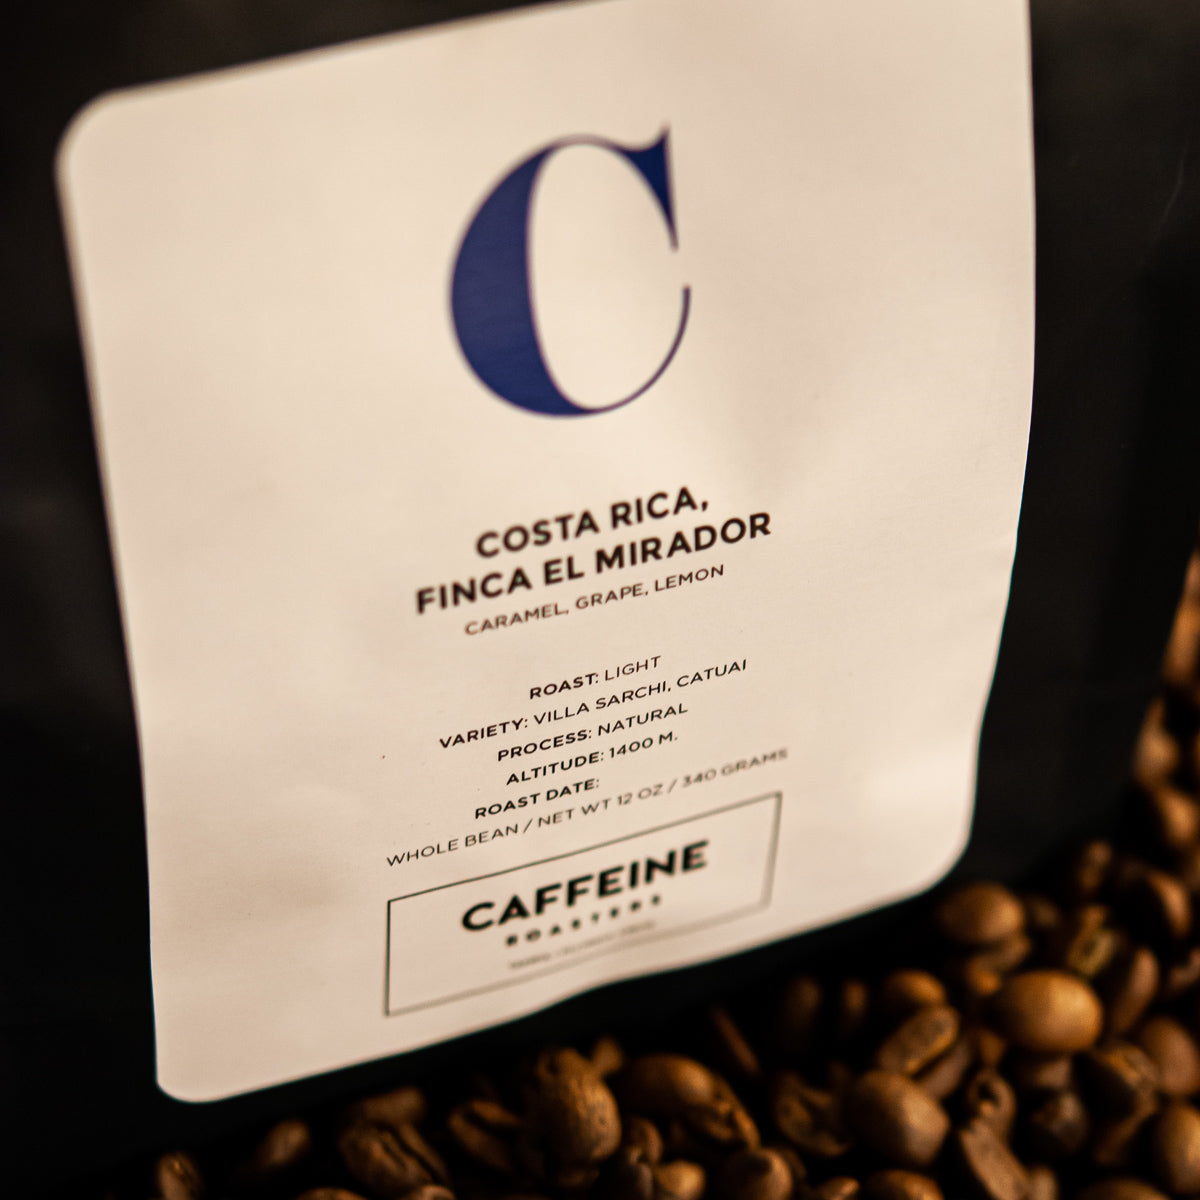 SINGLE ORIGIN: COSTA RICA, FINCA EL MIRADON